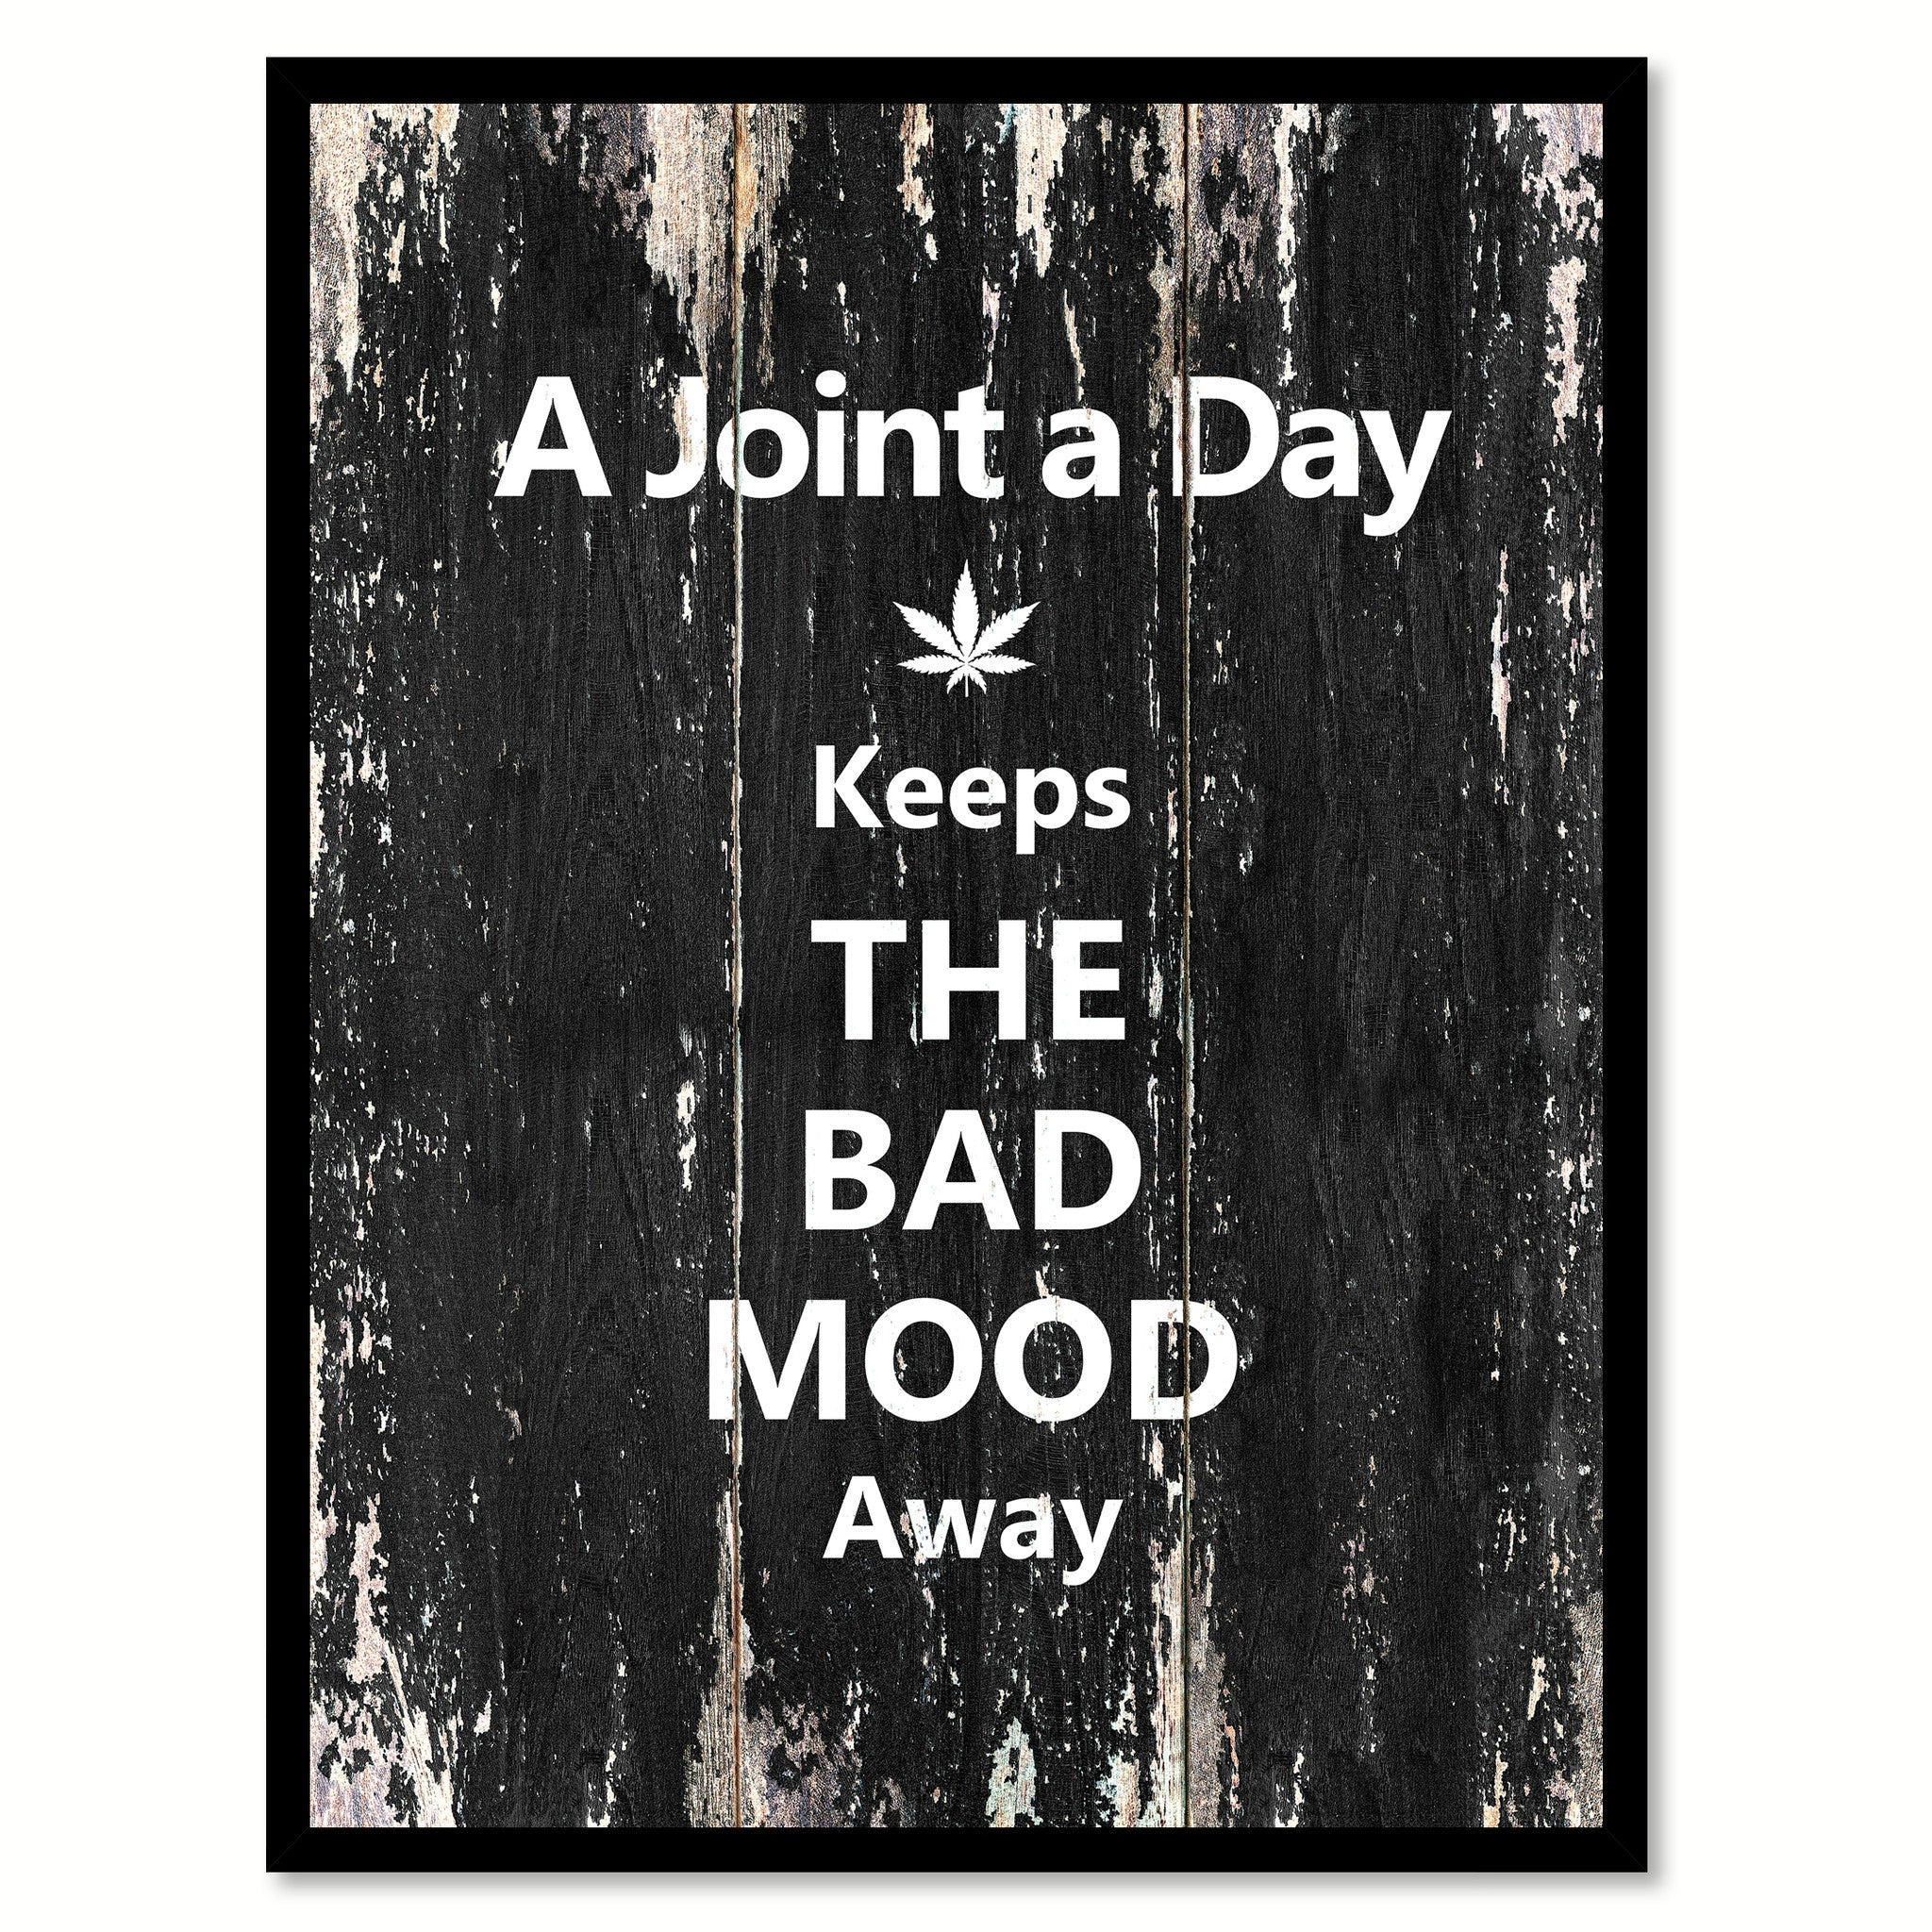 A Joint A Day Keeps The Bad Mood Away Inspirational Motivation Quote